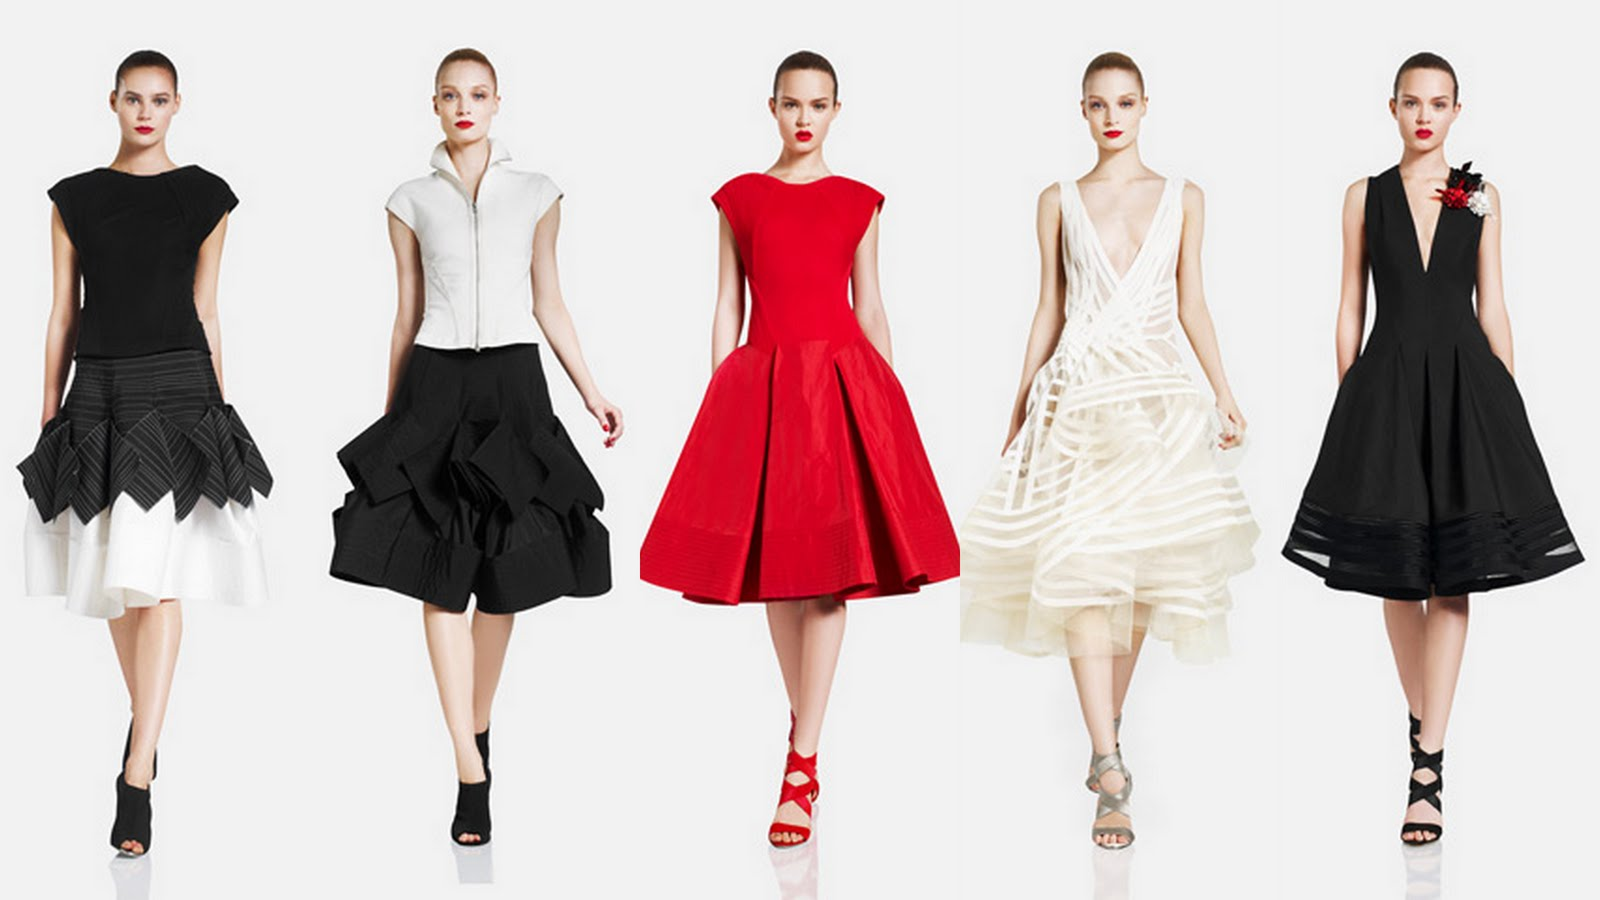 10 Eco-Friendly Luxury Fashion Brands - Donna Karan